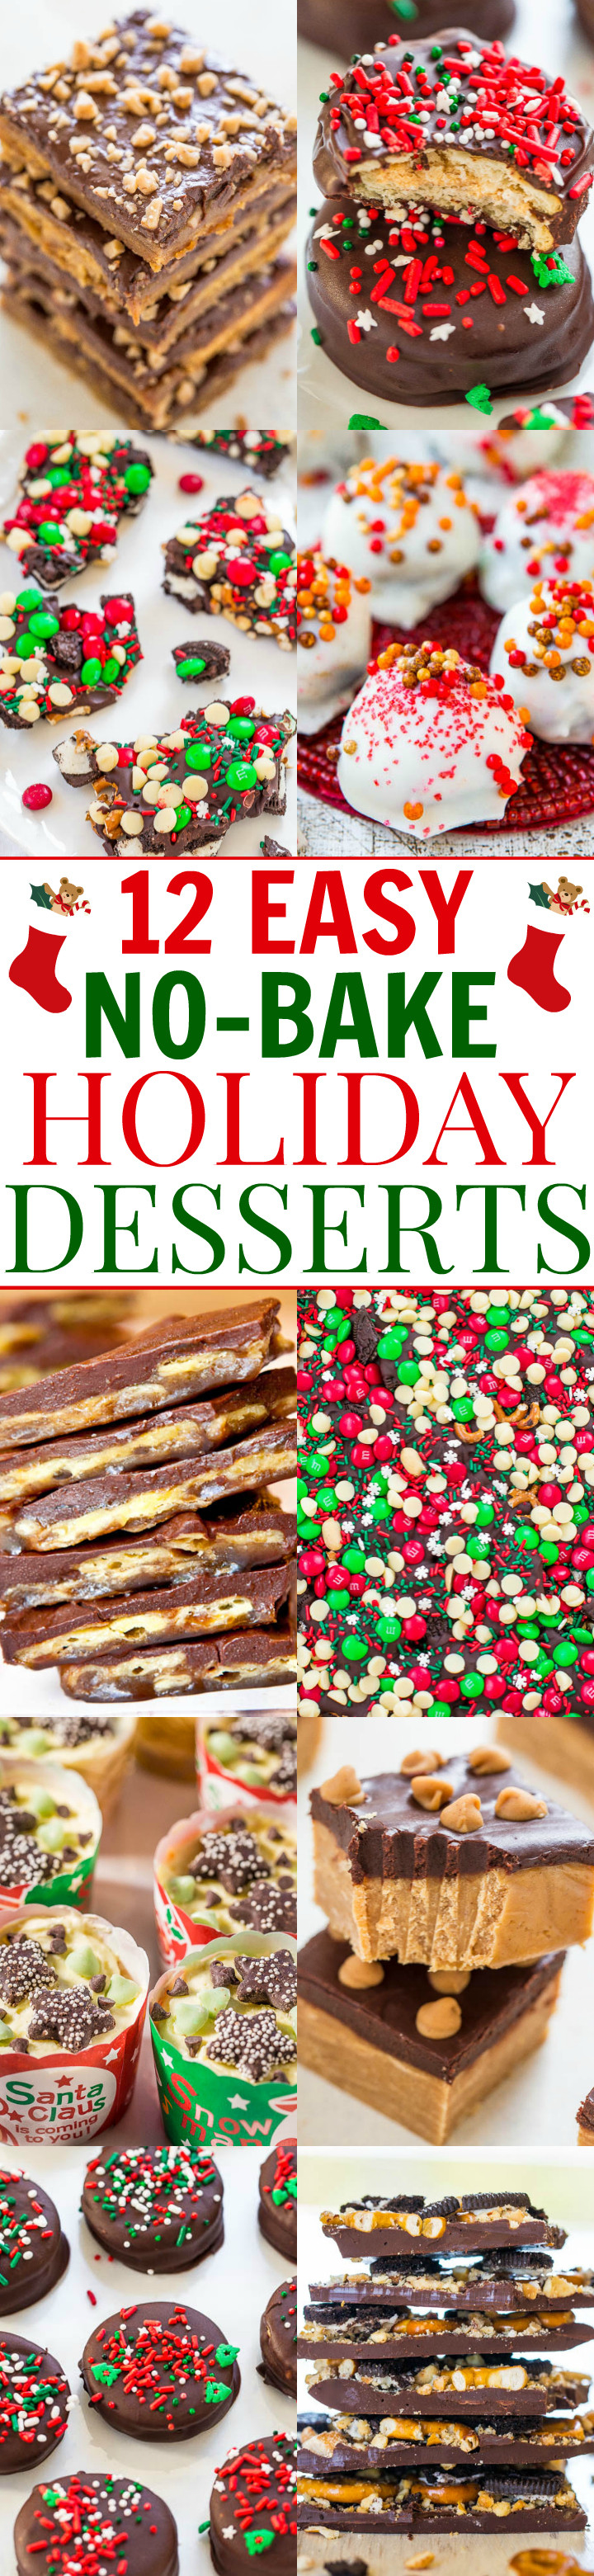 Easy No Bake Christmas Desserts  12 Easy No Bake Holiday Desserts Averie Cooks